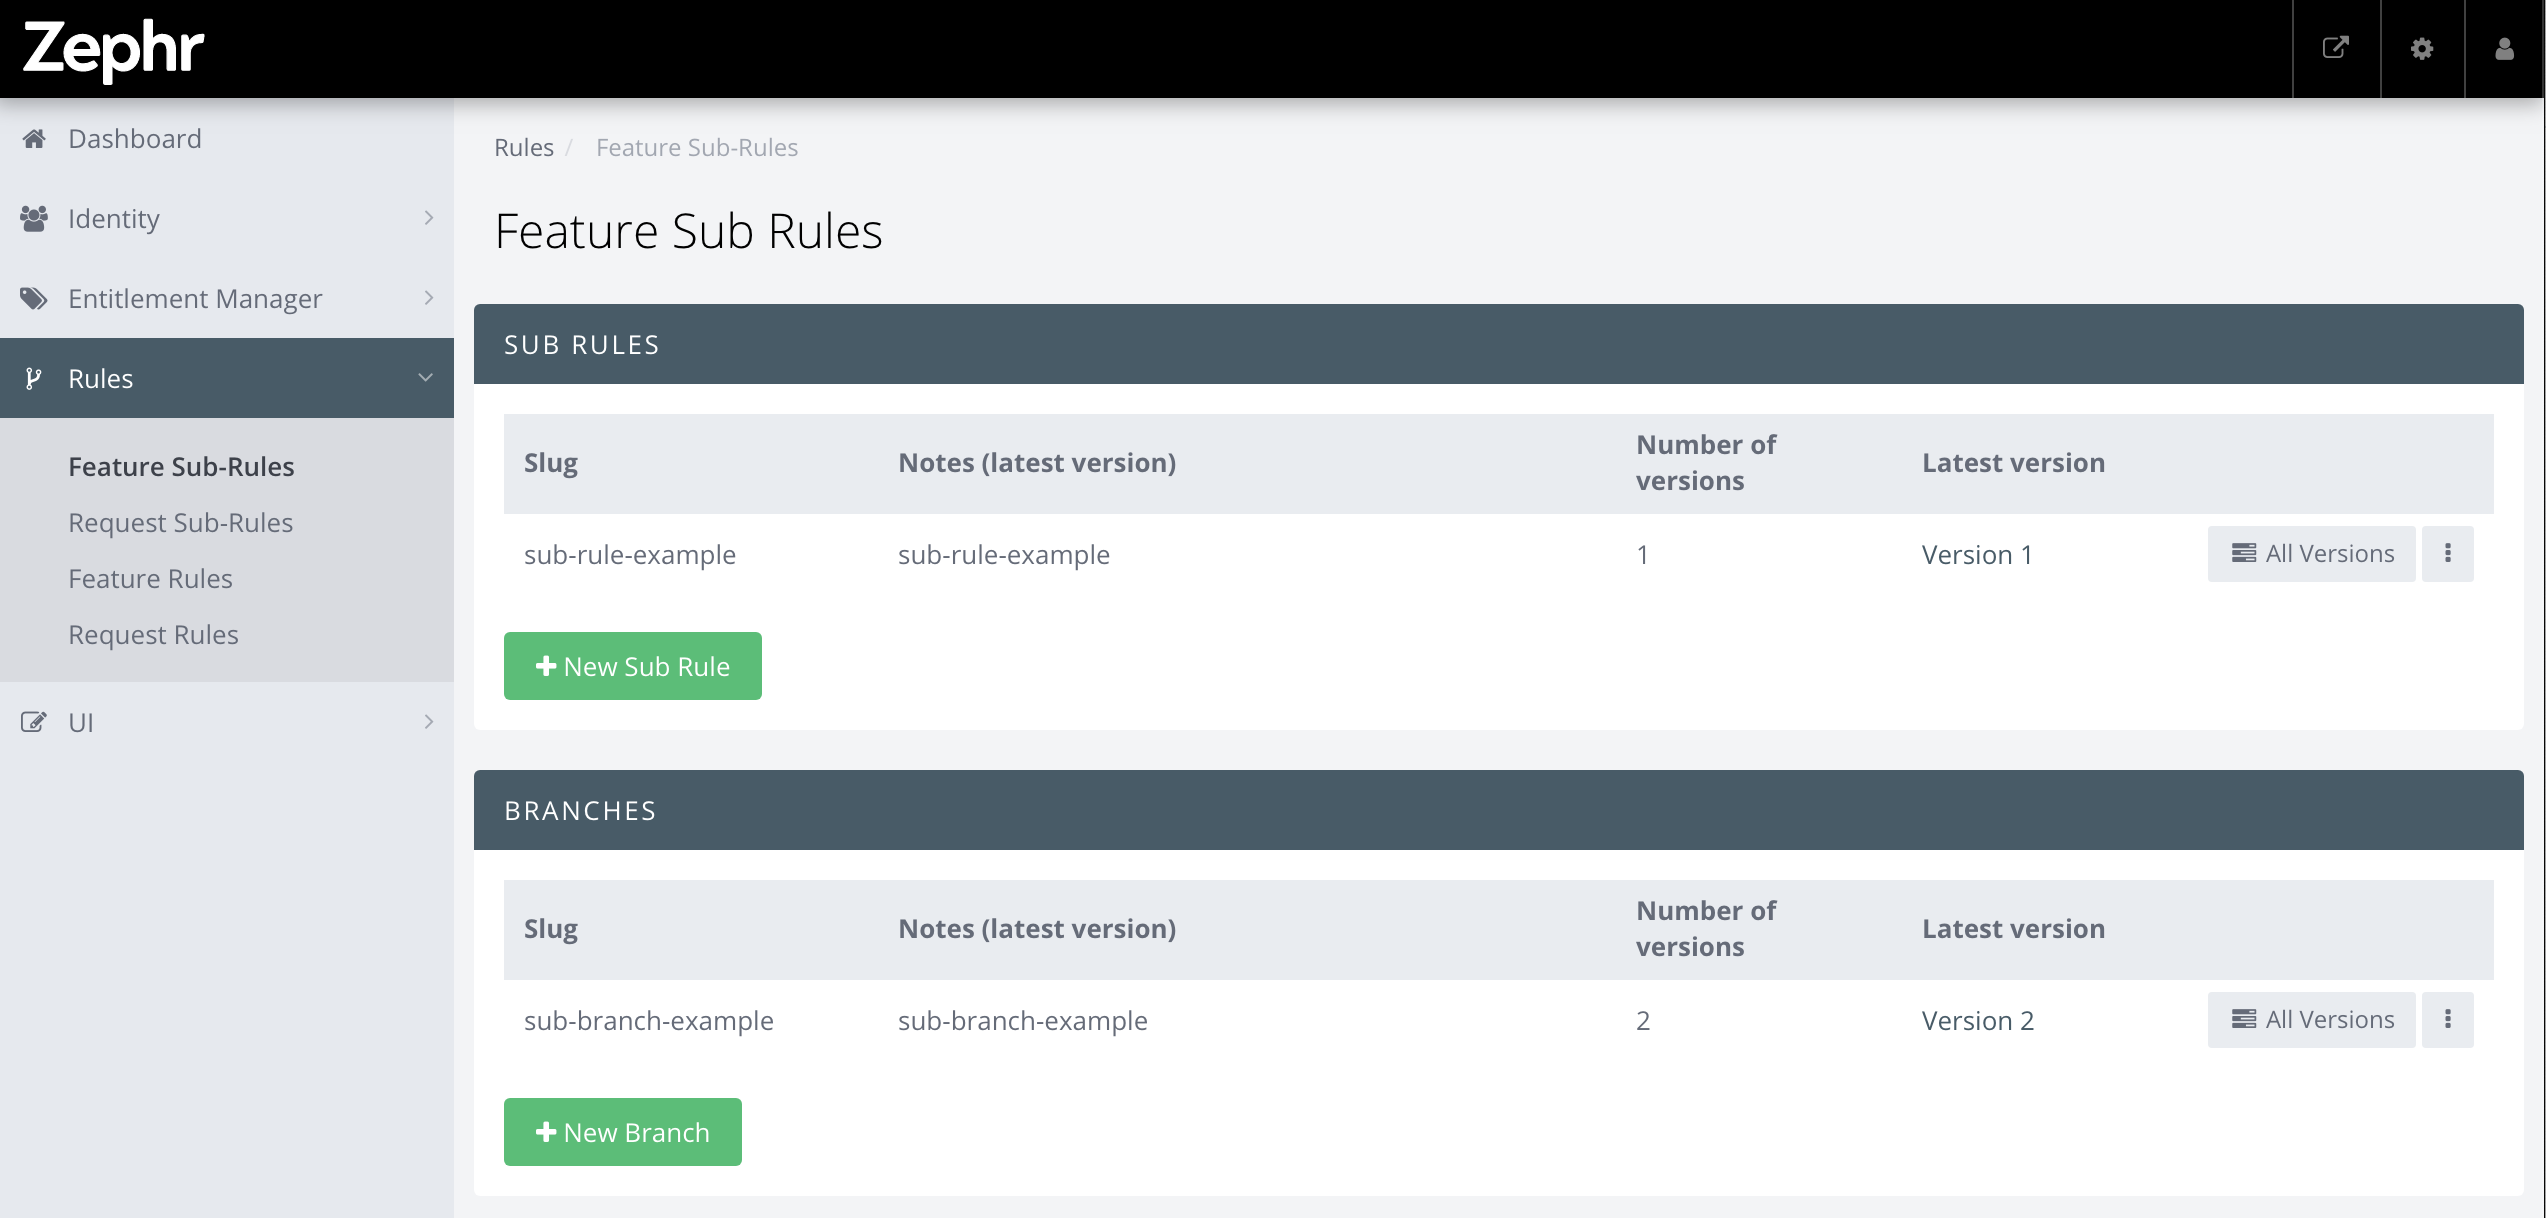 Sub Rules section of the Admin Console